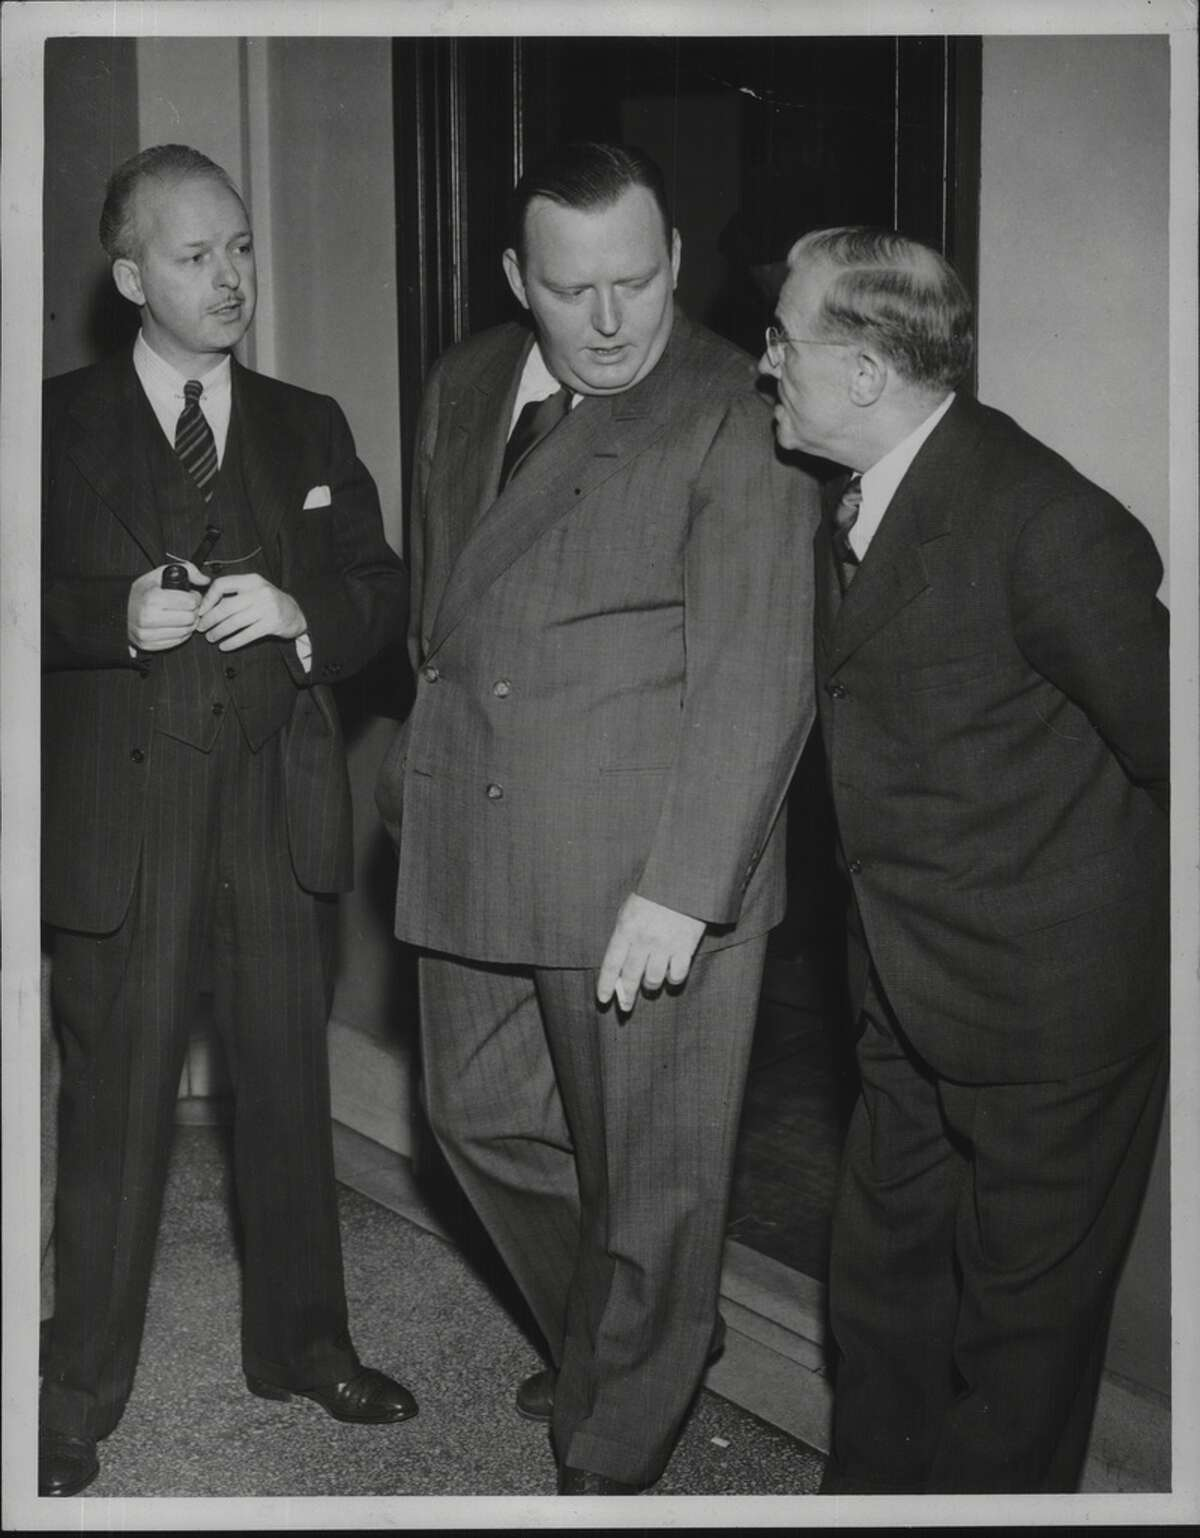 Herman Hoogkamp Years in office: 1940 - 1941 (Pictured right)